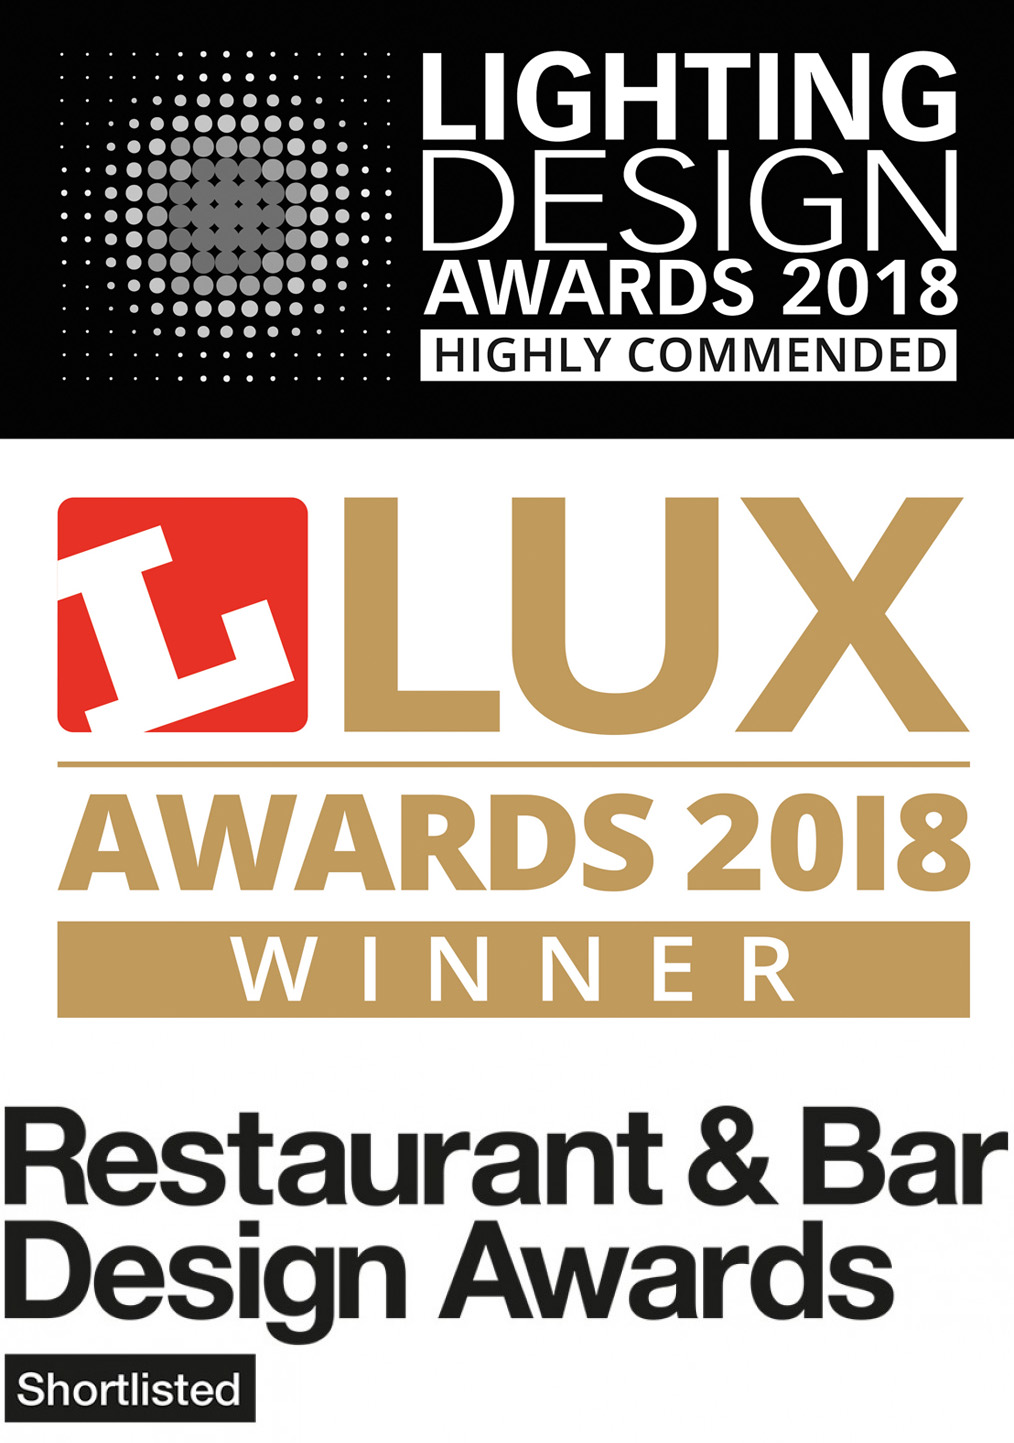 PJC-Light-Studio-Lighting-Design-Awards-2018-Lux-Awards-2018-Restaurant-And-Bar-2018.jpg